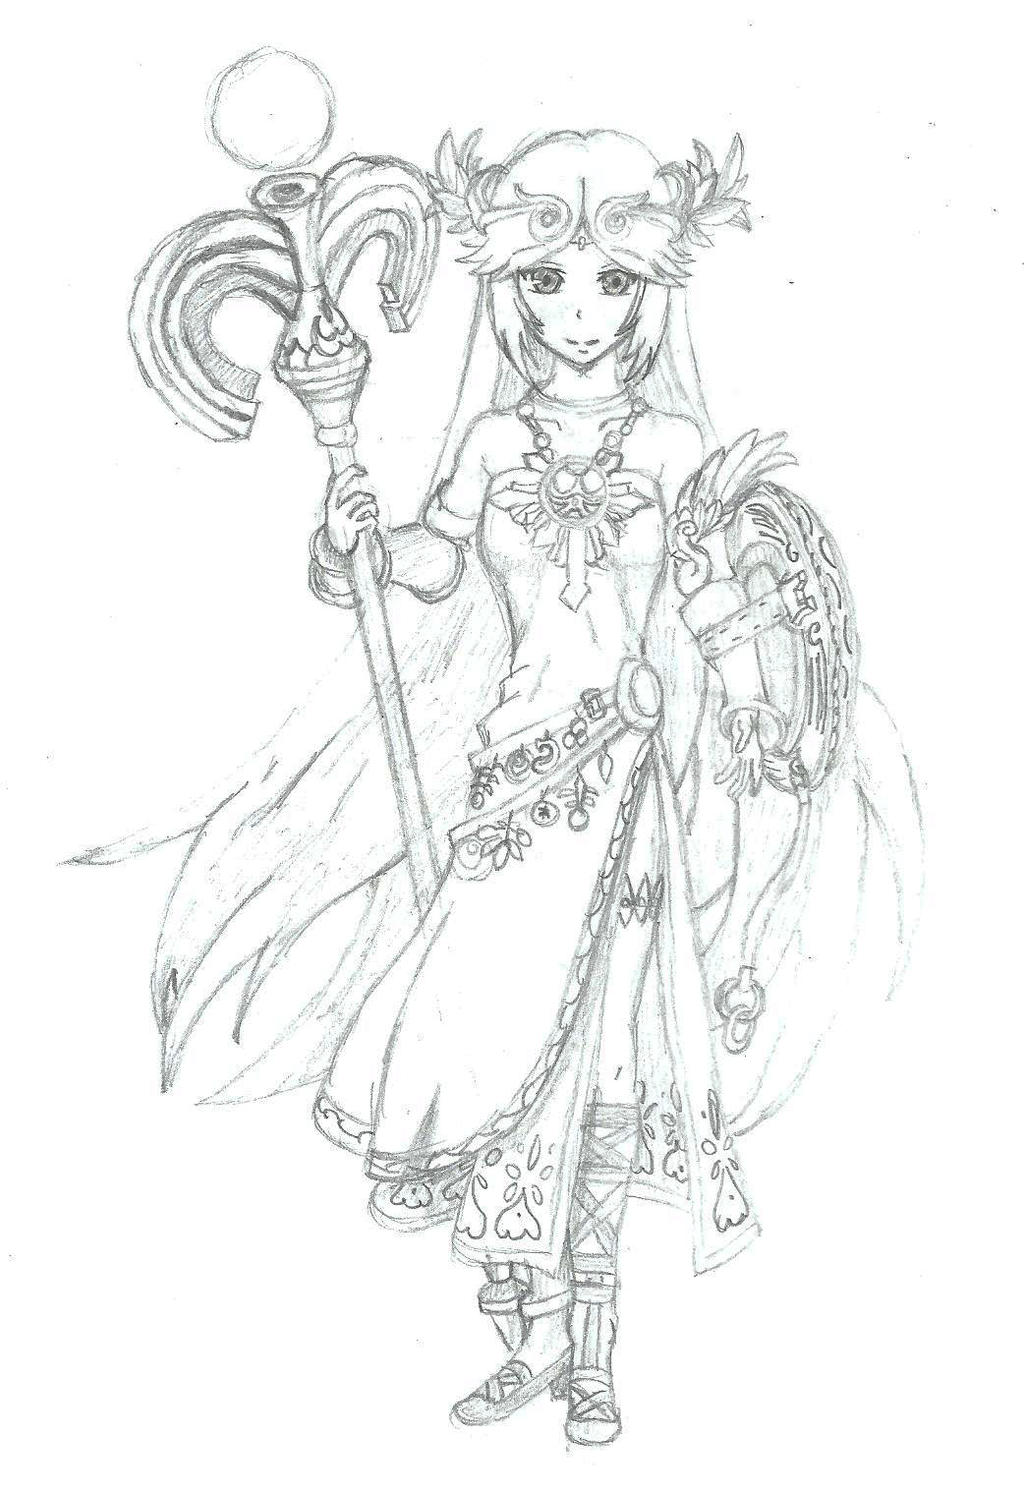 Kid Icarus Palutena By BurningTiger9000